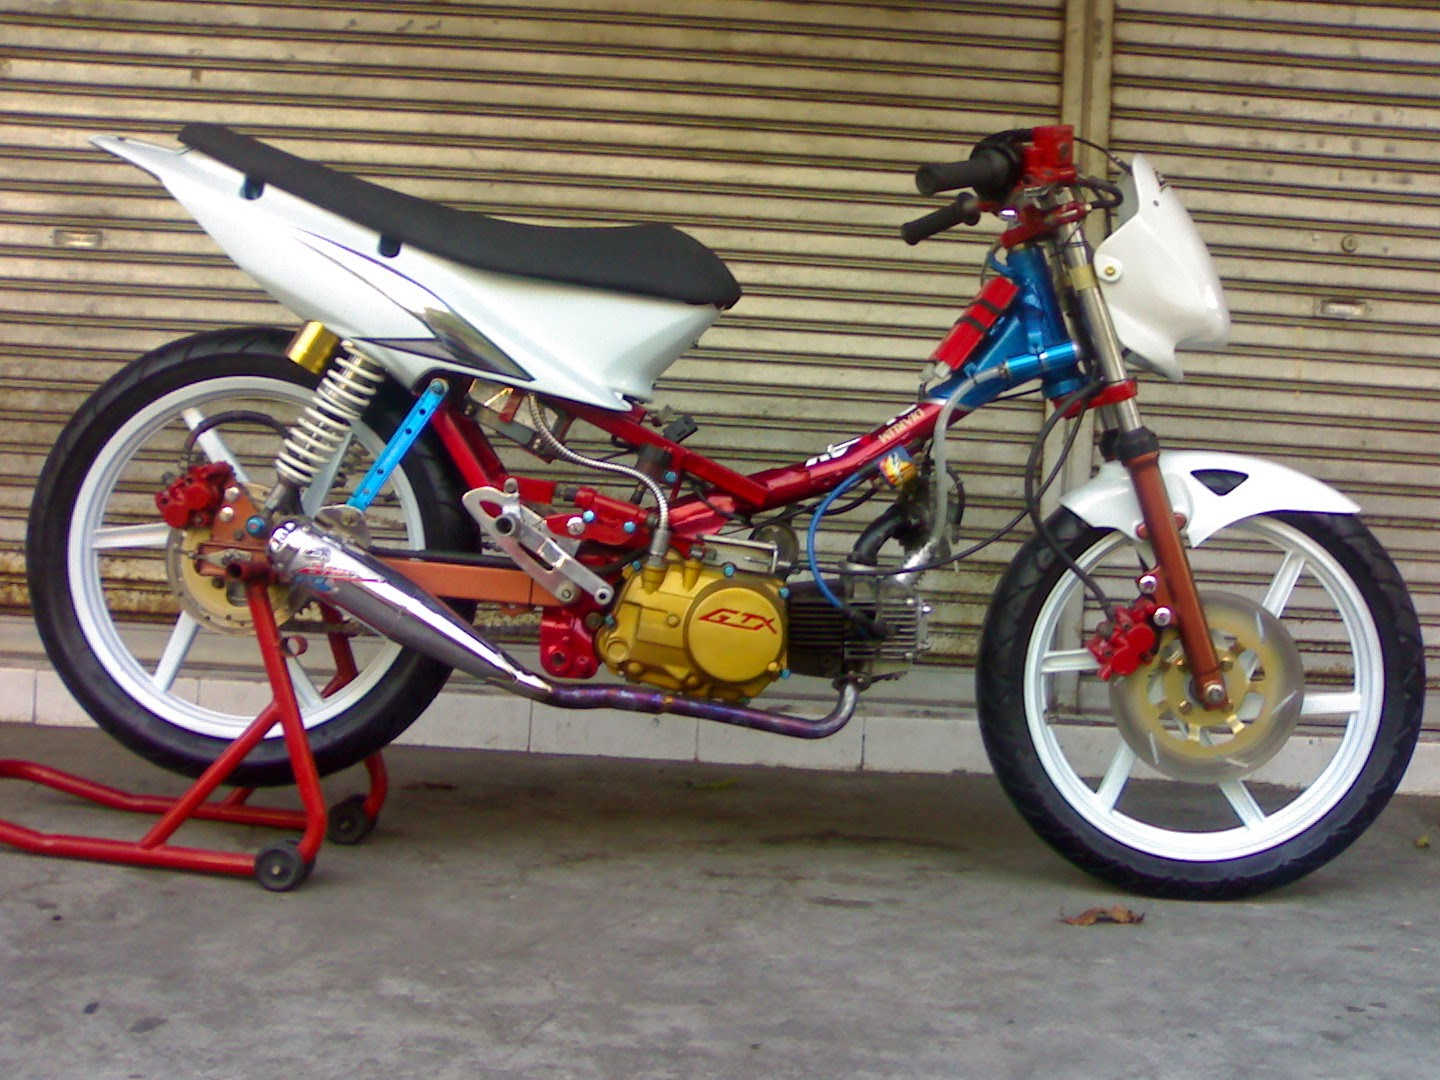 Vega R Modifikasi Road Race Balap